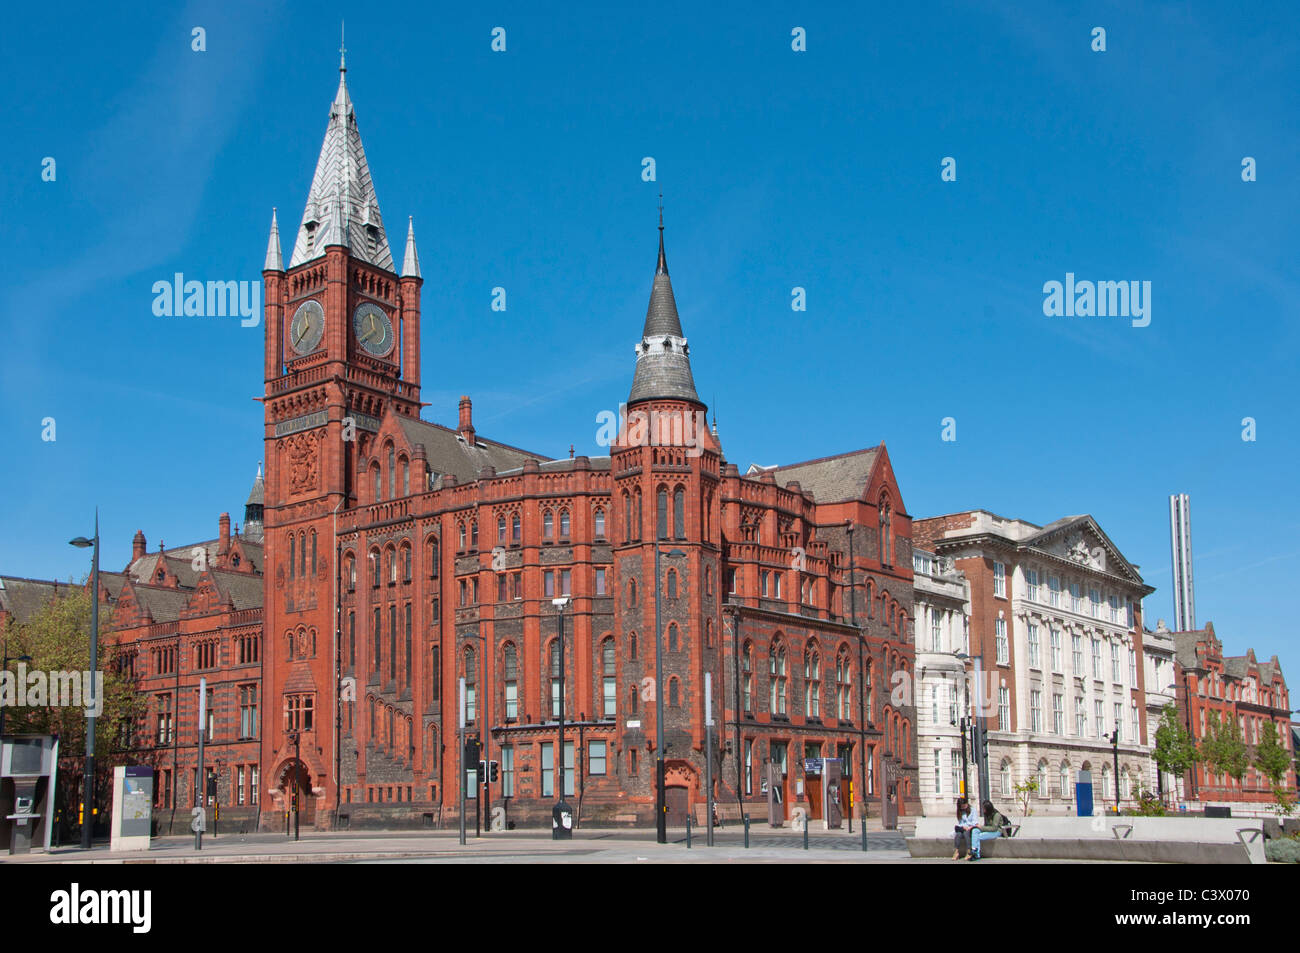 The Victoria Gallery And Museum, Liverpool University, Merseyside, UK - Stock Image